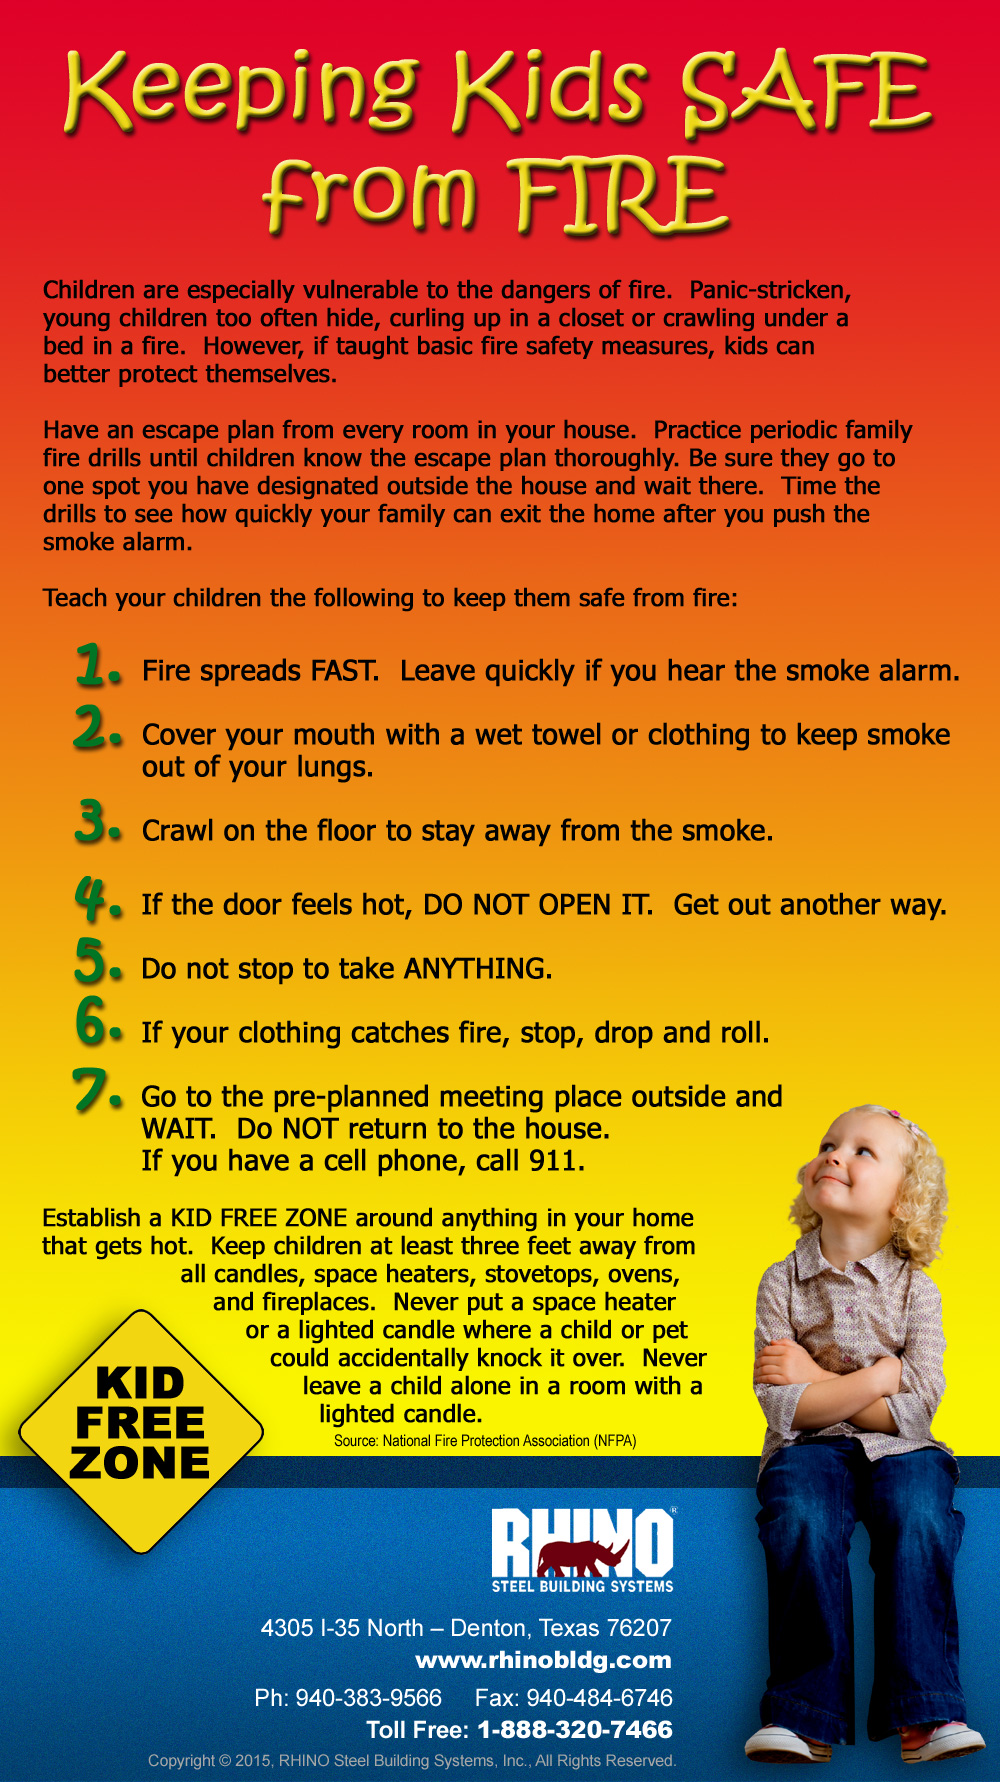 Preventing holiday fires rhino steel building systems for Fire prevention tips for home